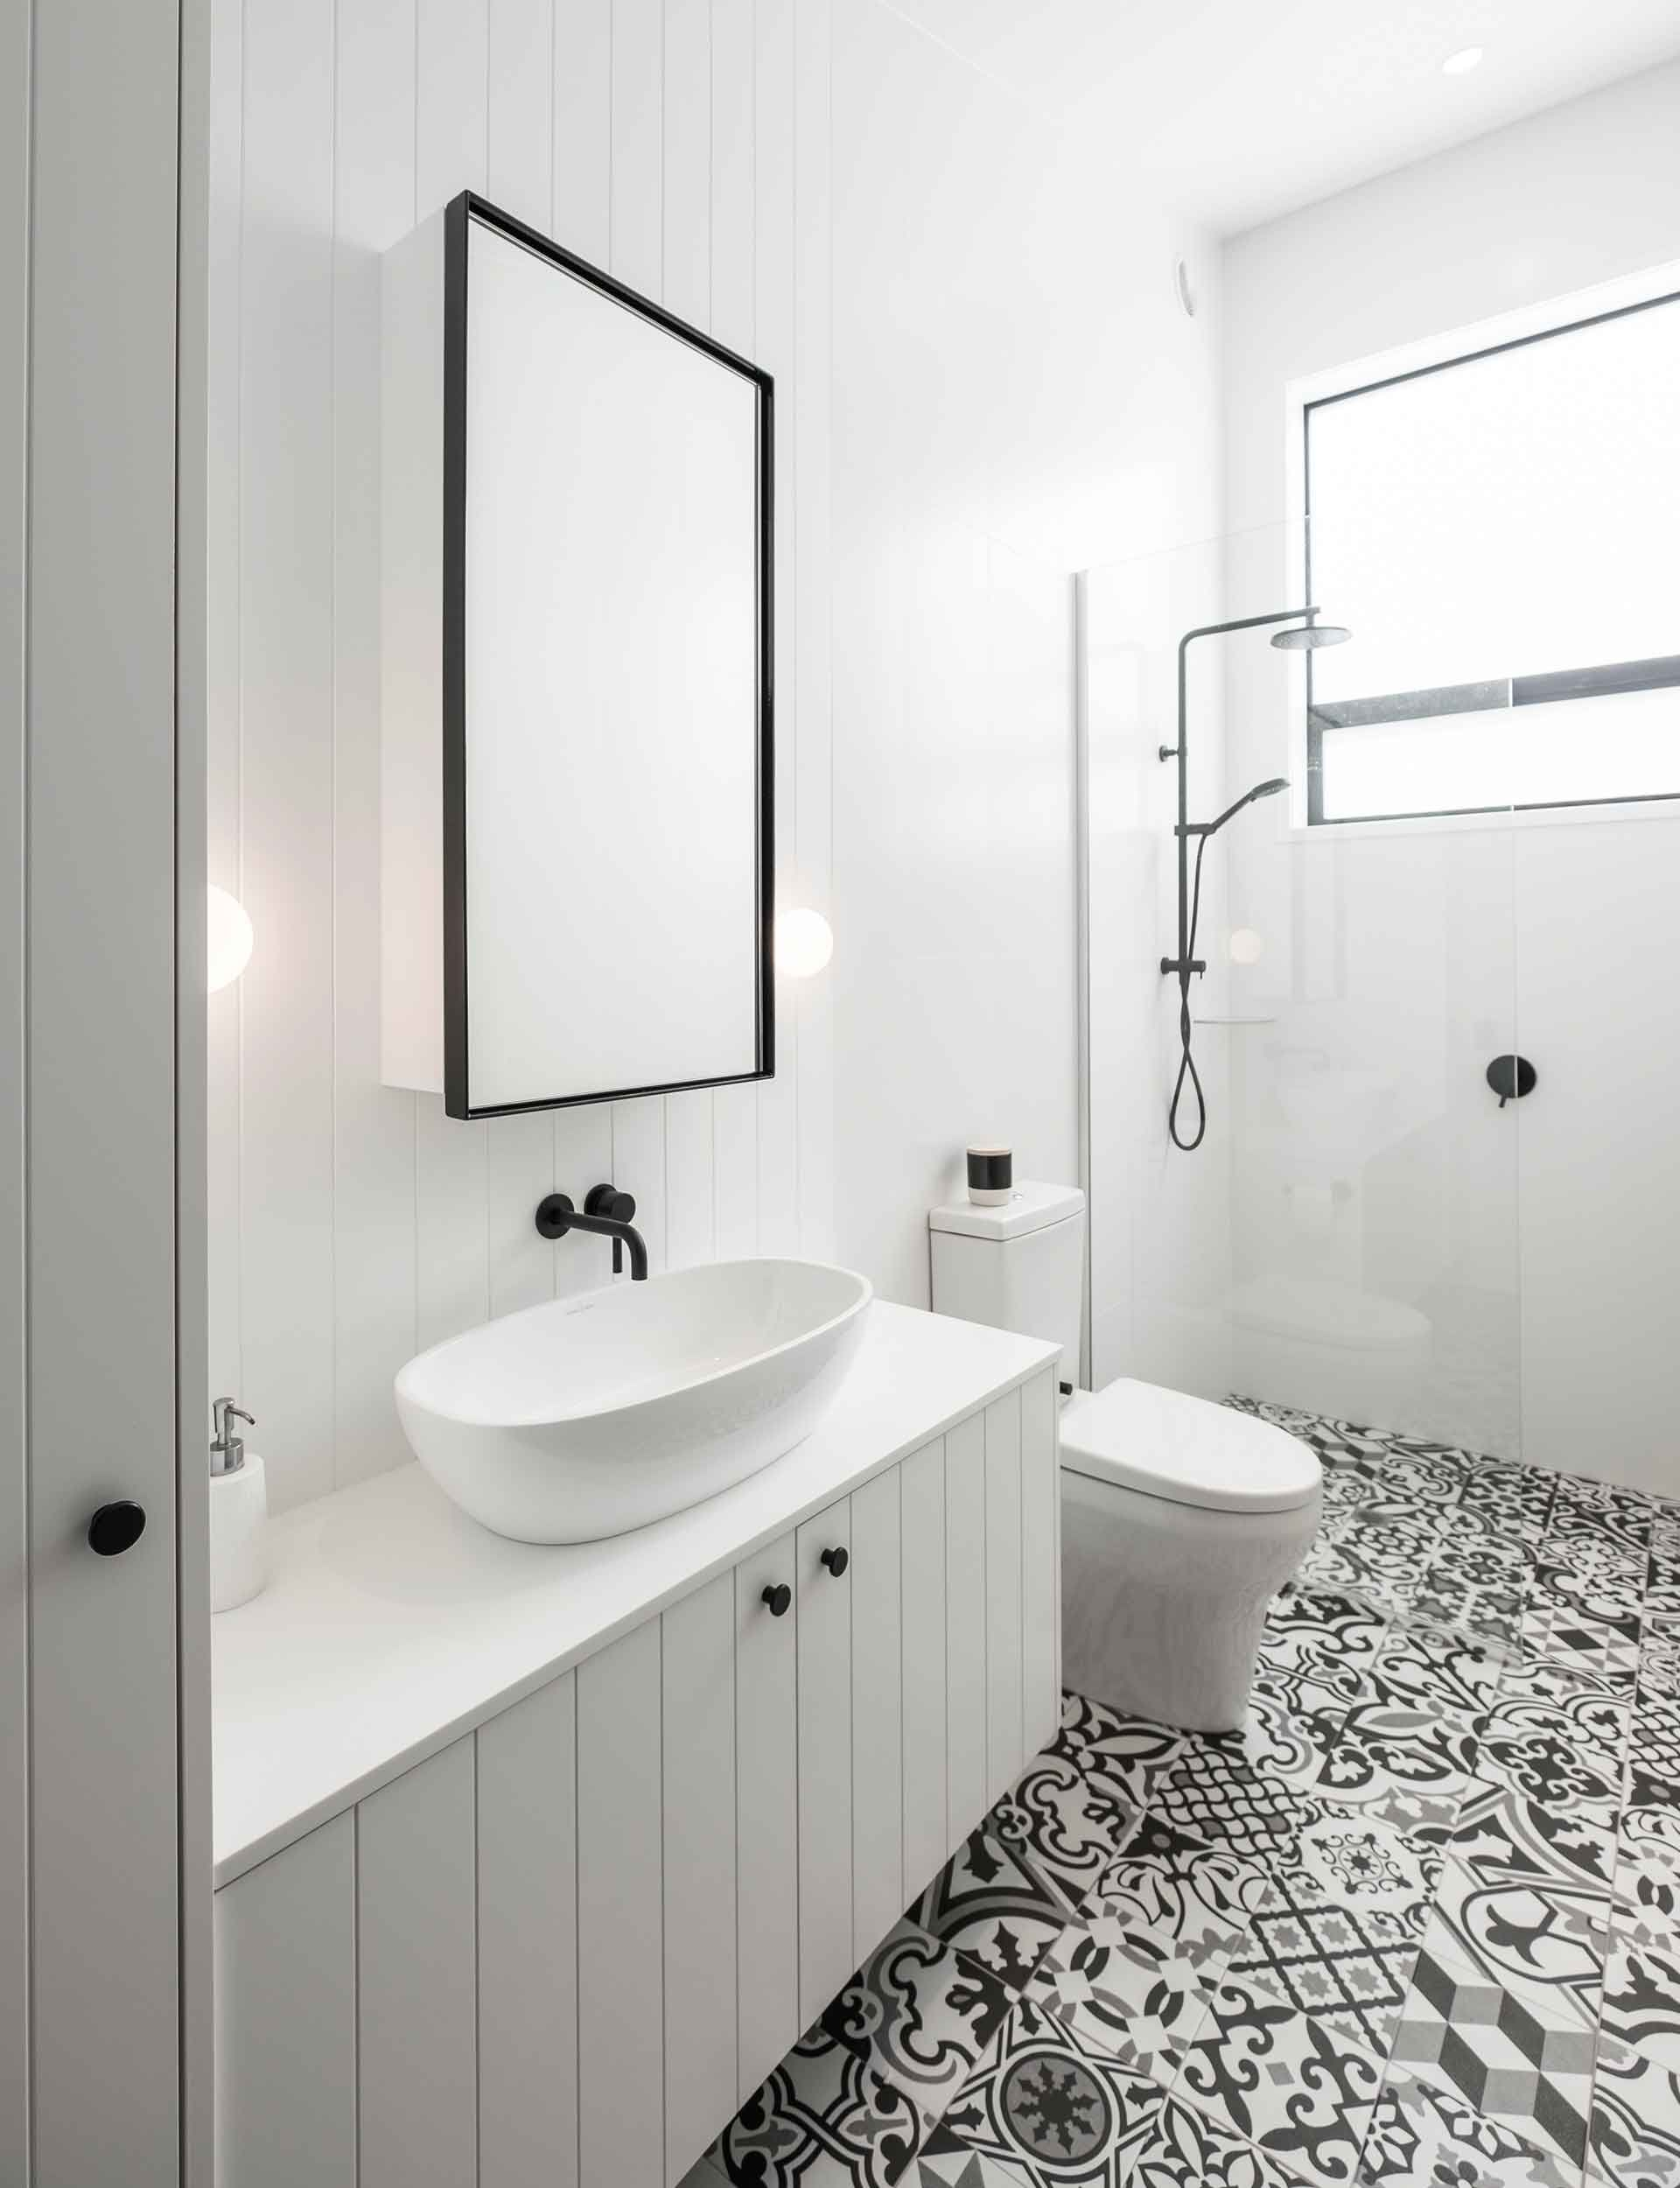 5 Essential Design Hacks That Will Inspire Your Bathroom Renovation Simple Bathroom Renovation Bathroom Renovation Small Bathroom